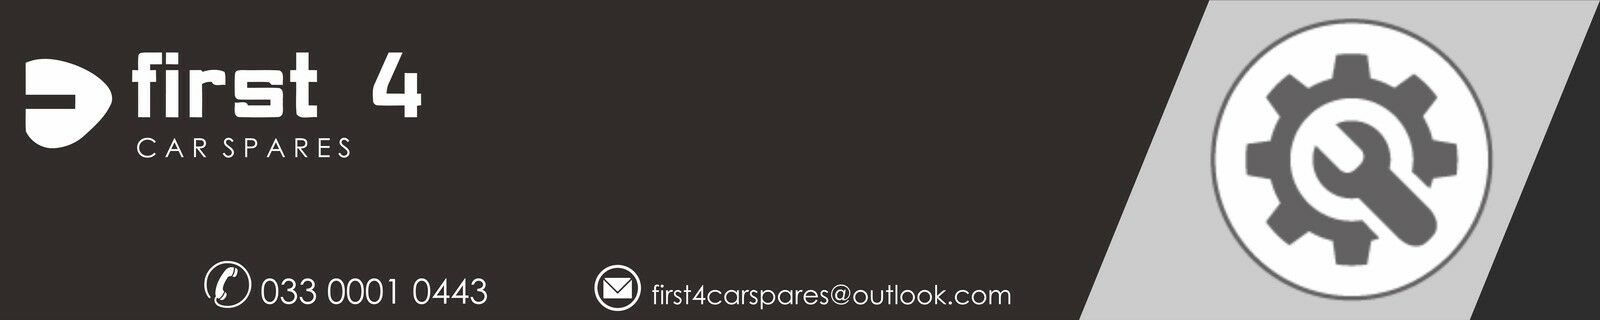 first4carsparesuk